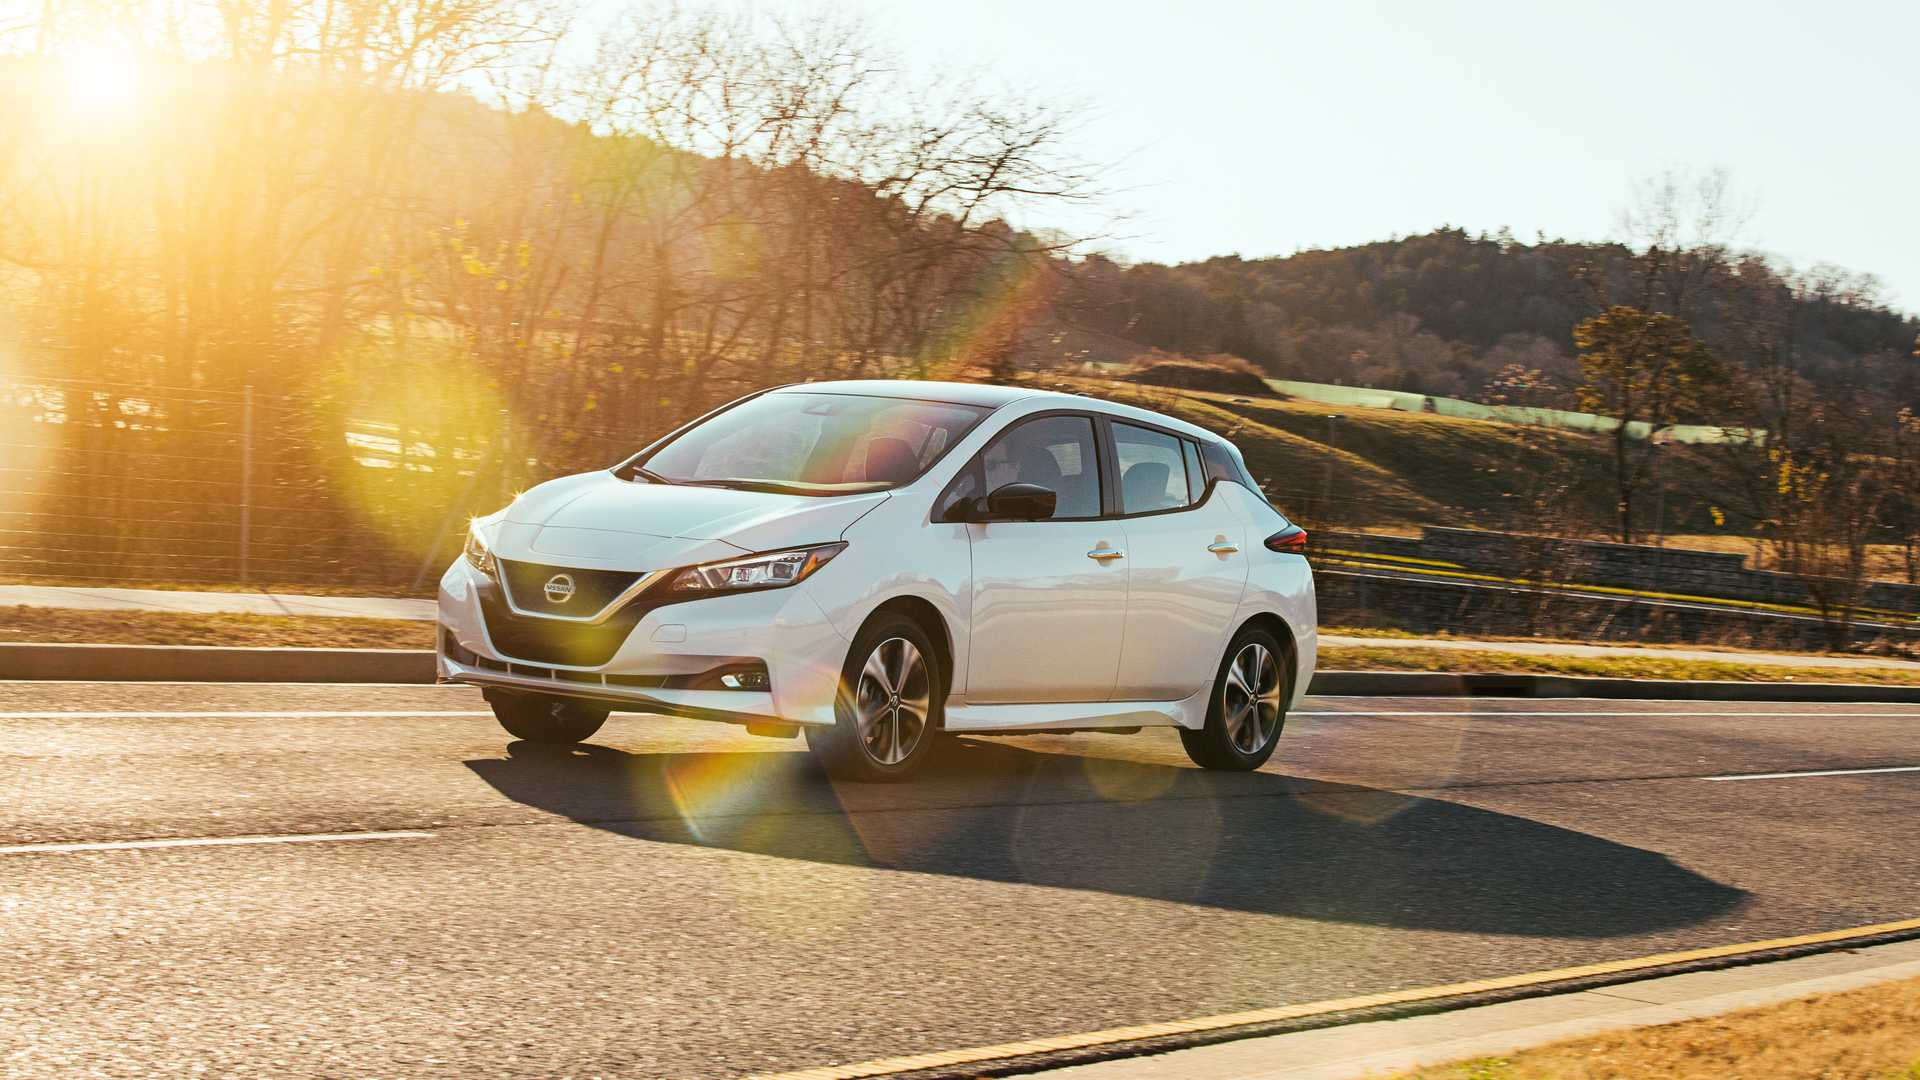 2020 nissan leaf starts at  31 600 and has more standard kit